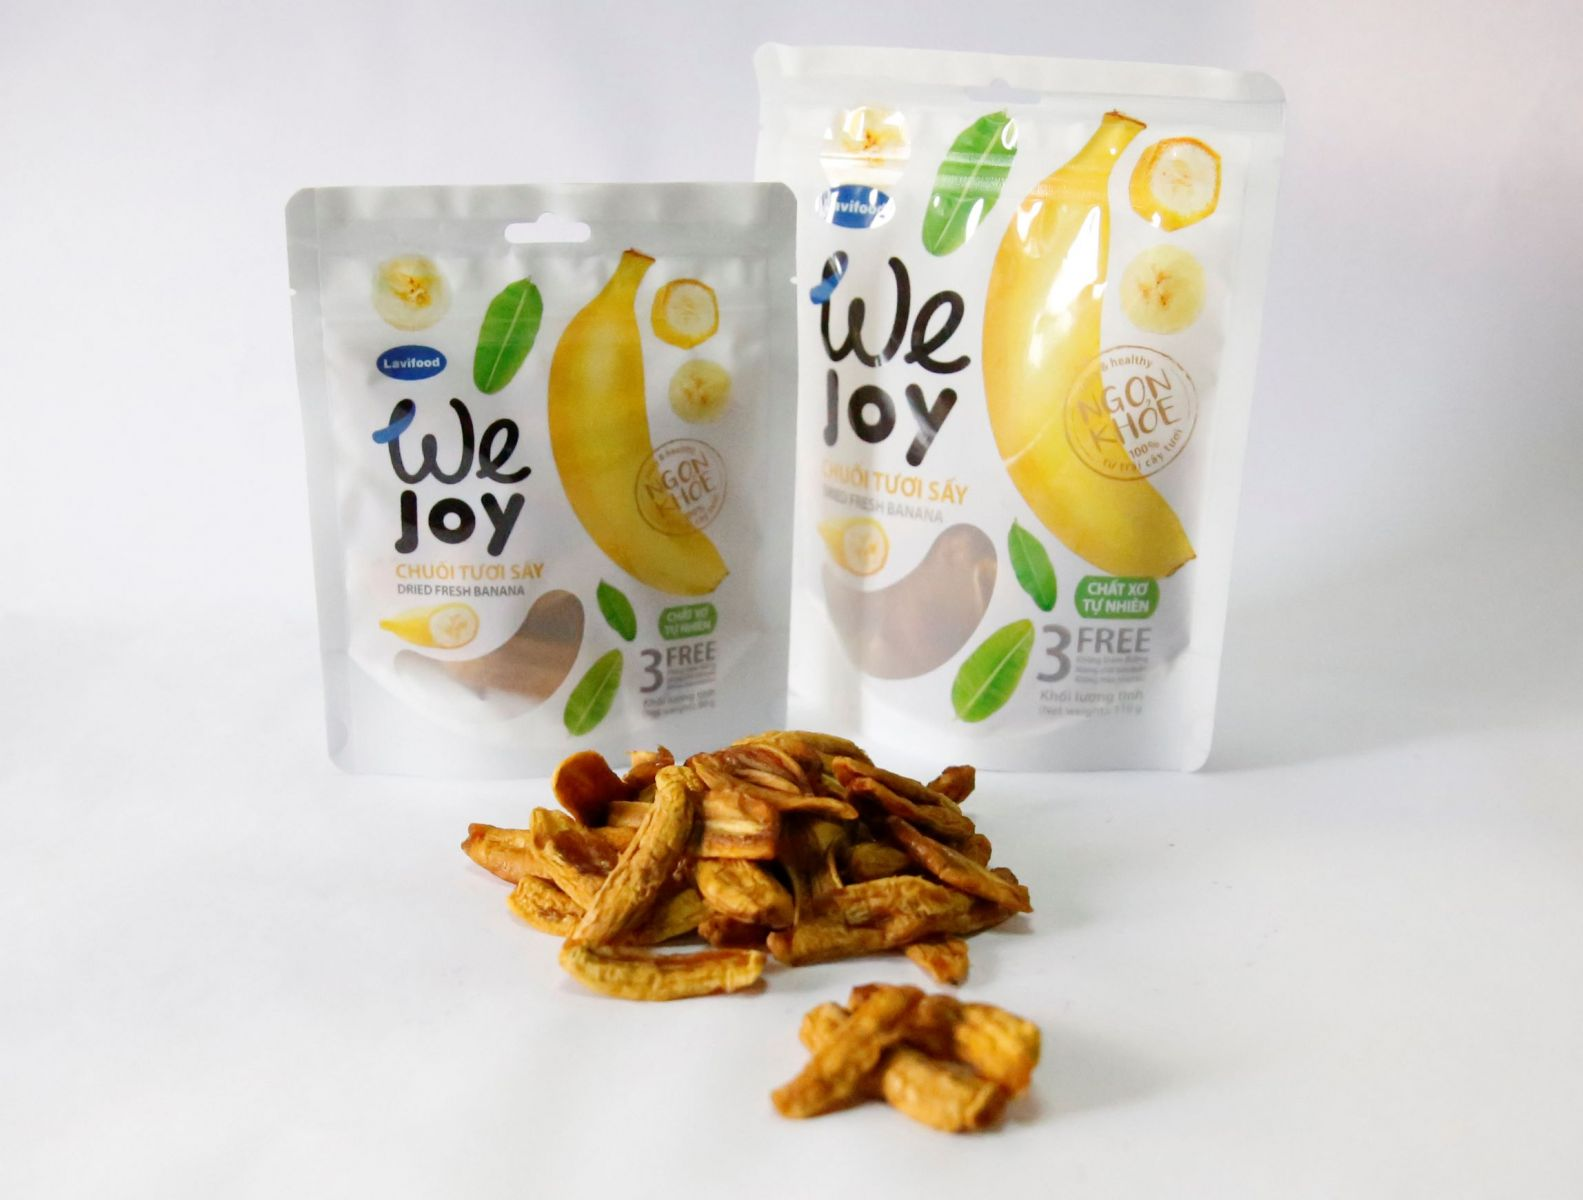 https://www.lavifood.com/en/products/dried-fruit-vegetables/we-joy-dried-banana